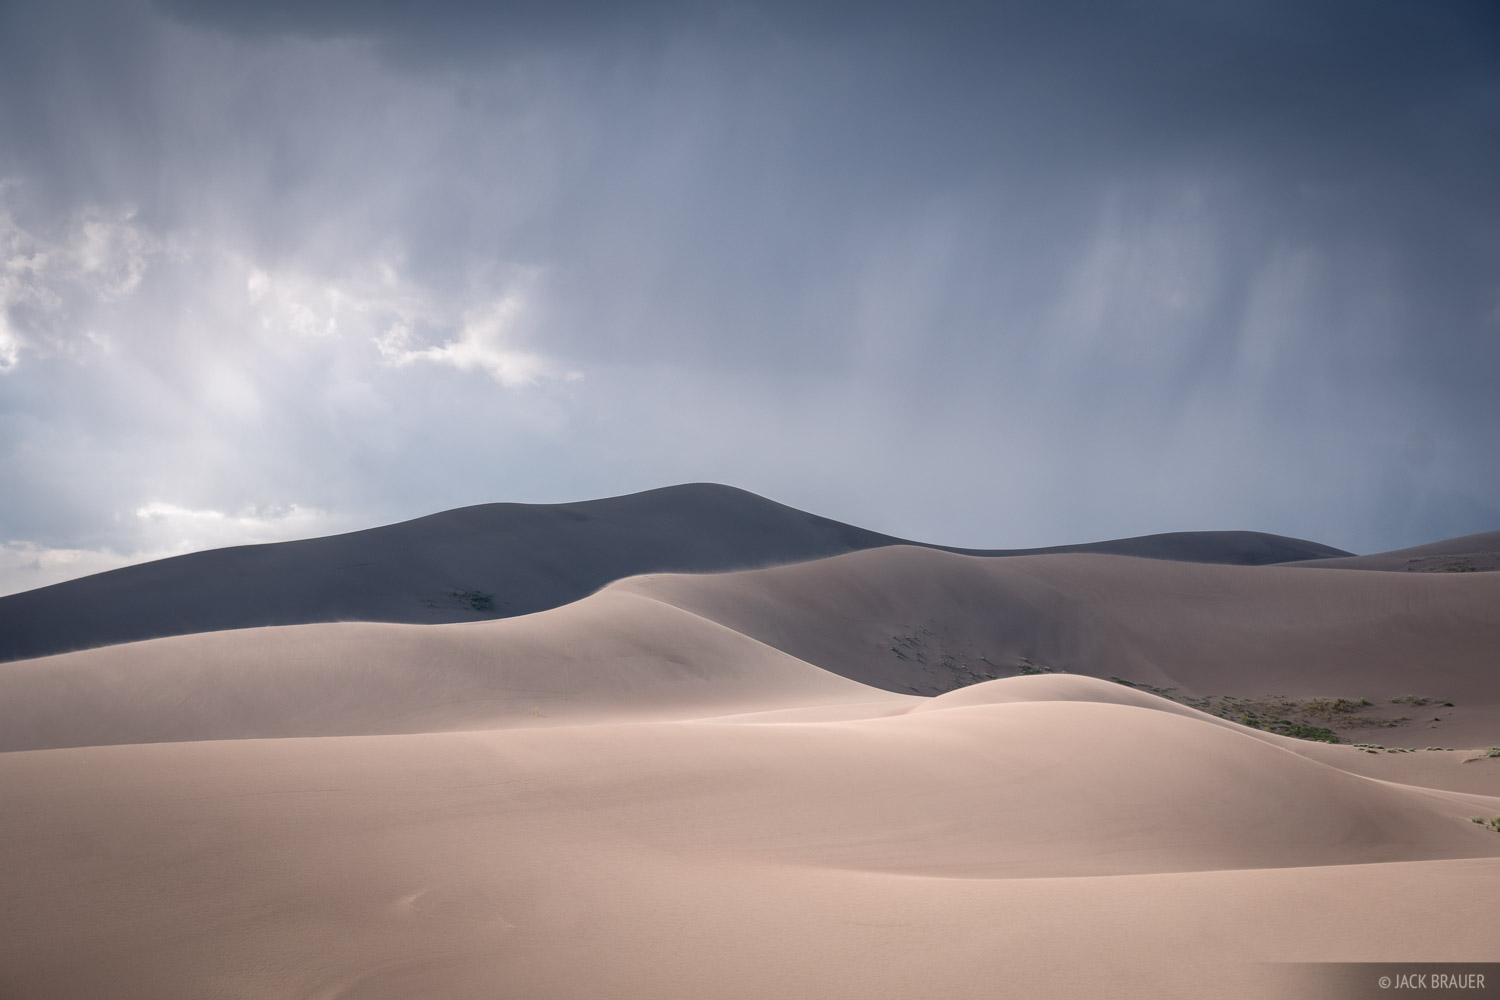 Thunderclouds and rain roll over the Great Sand Dunes.